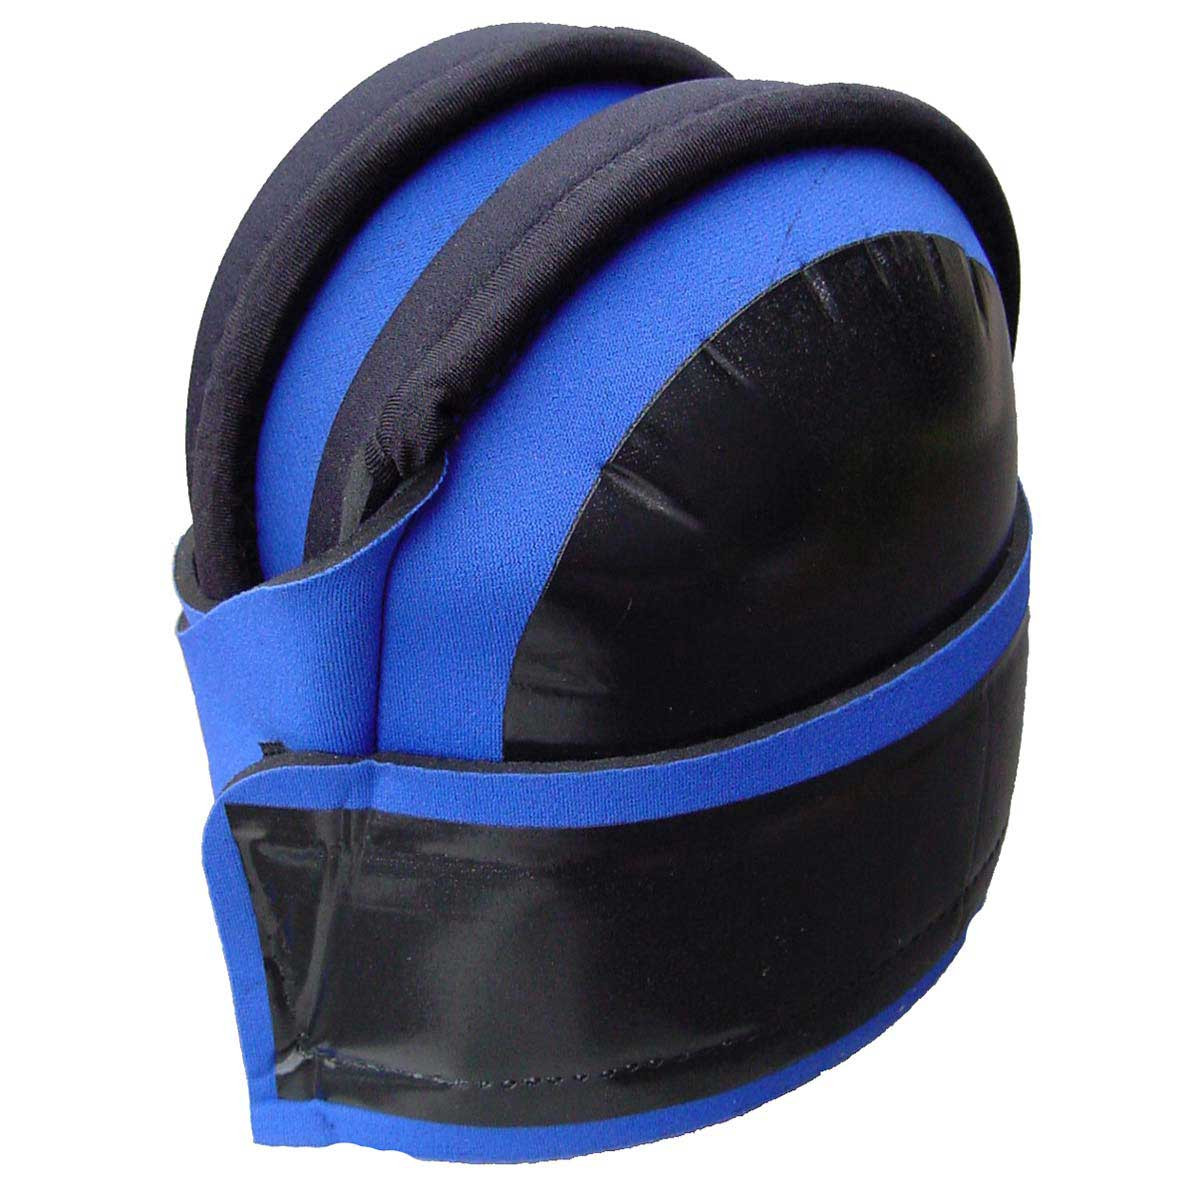 Troxell Supersoft Kneepads action